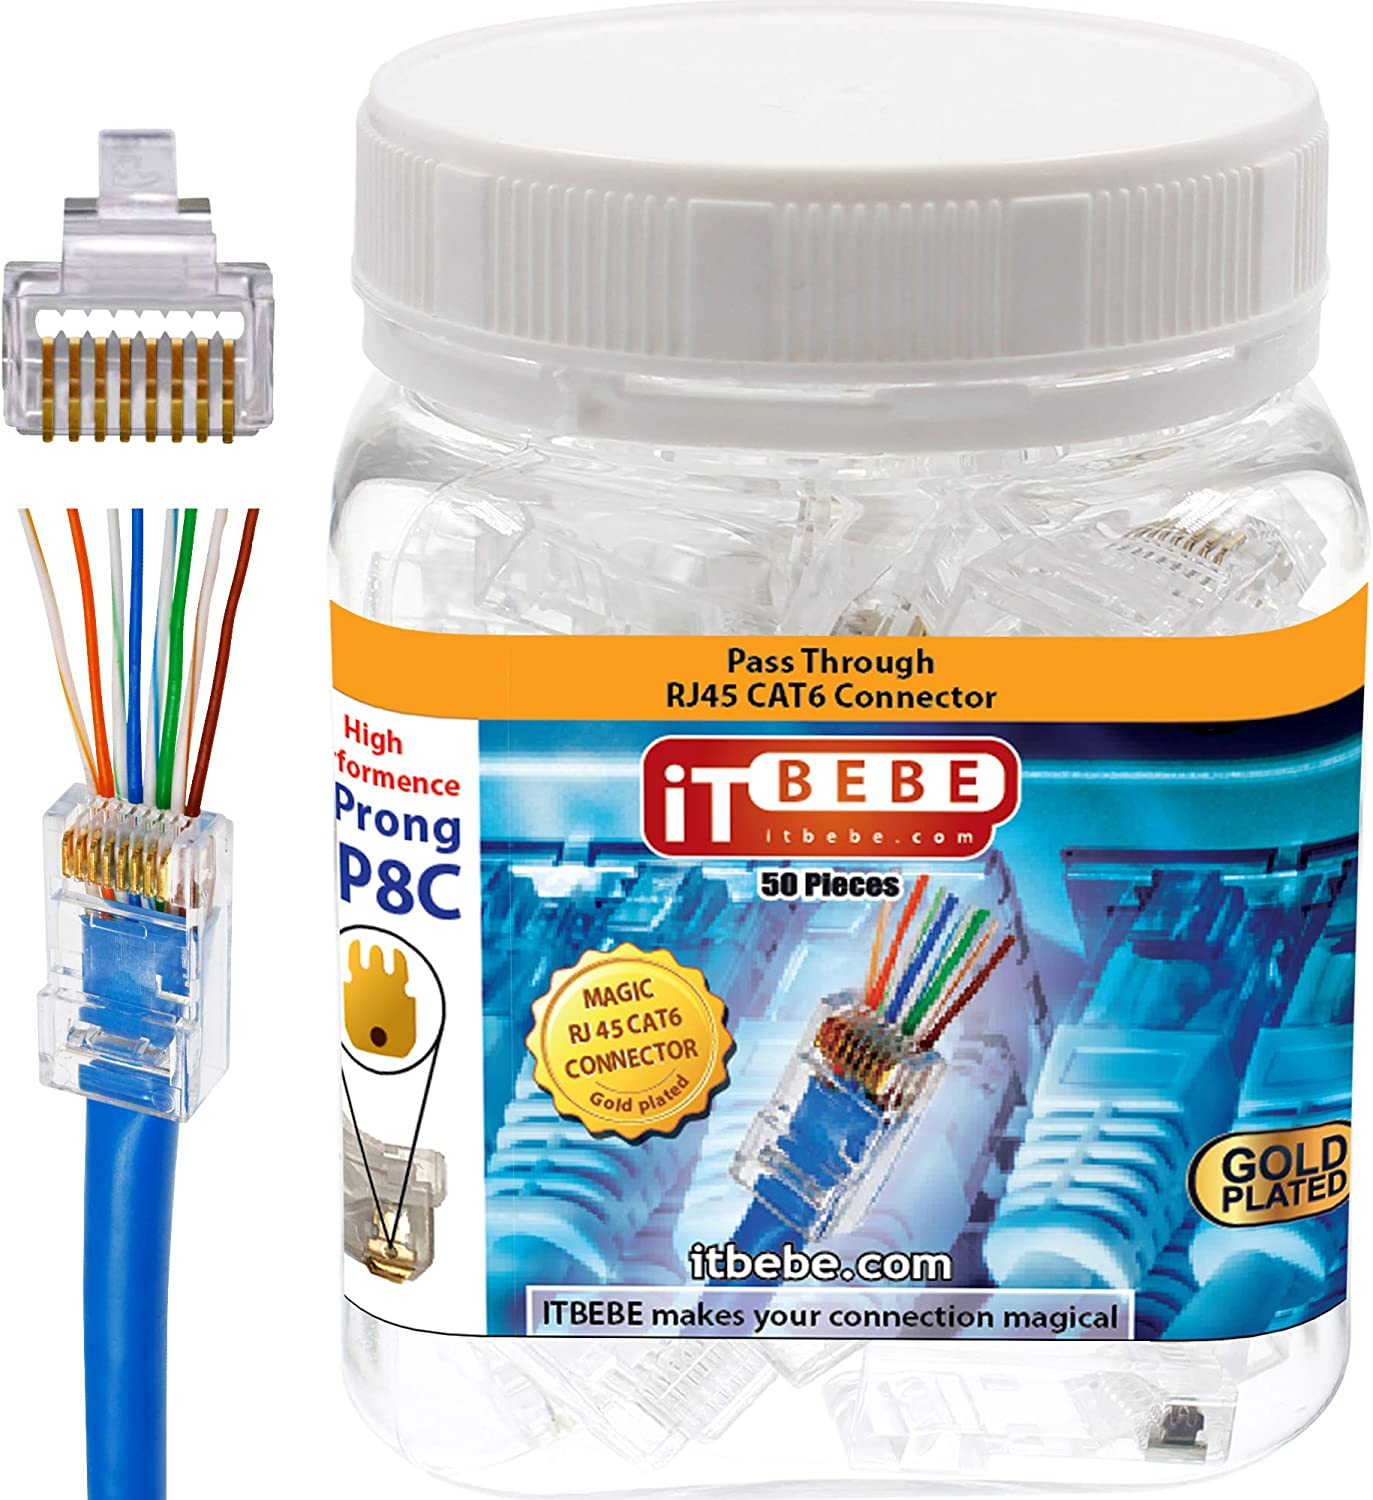 100 Pieces Total ITBEBE Gold-Plated Pass Through RJ45 Cat6 3-Prong Connectors and Cable Strain Relief 50//50 Kit for Clean Snag-Free Patch Cords